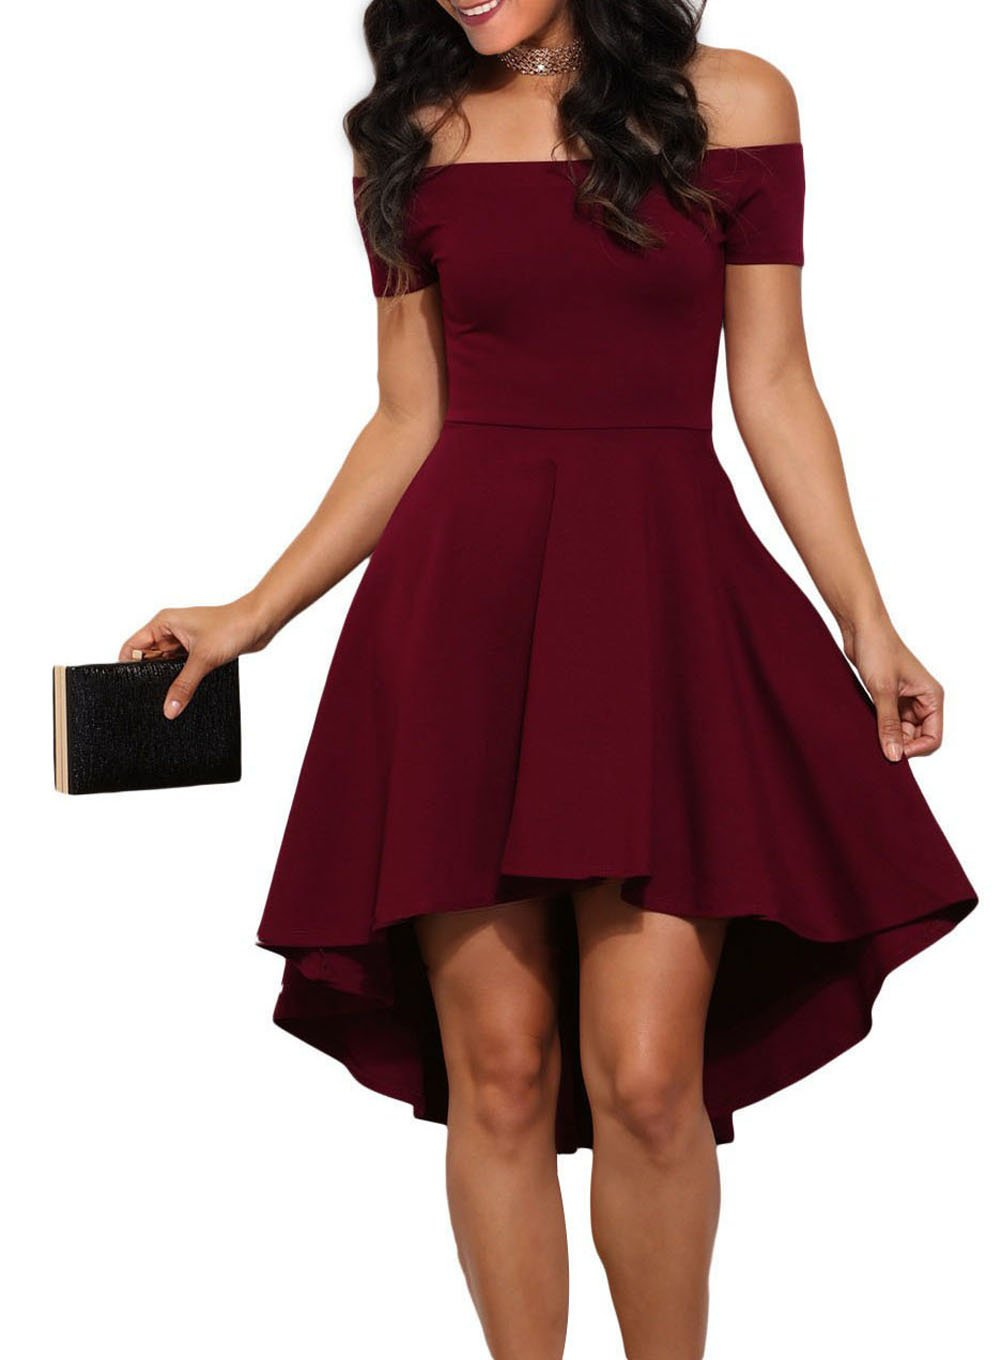 LOSRLY Womens Fit and Flare Bridesmaid Cocktail Dress Prime Dark Red Burgundy Wine Maroon M 8 10